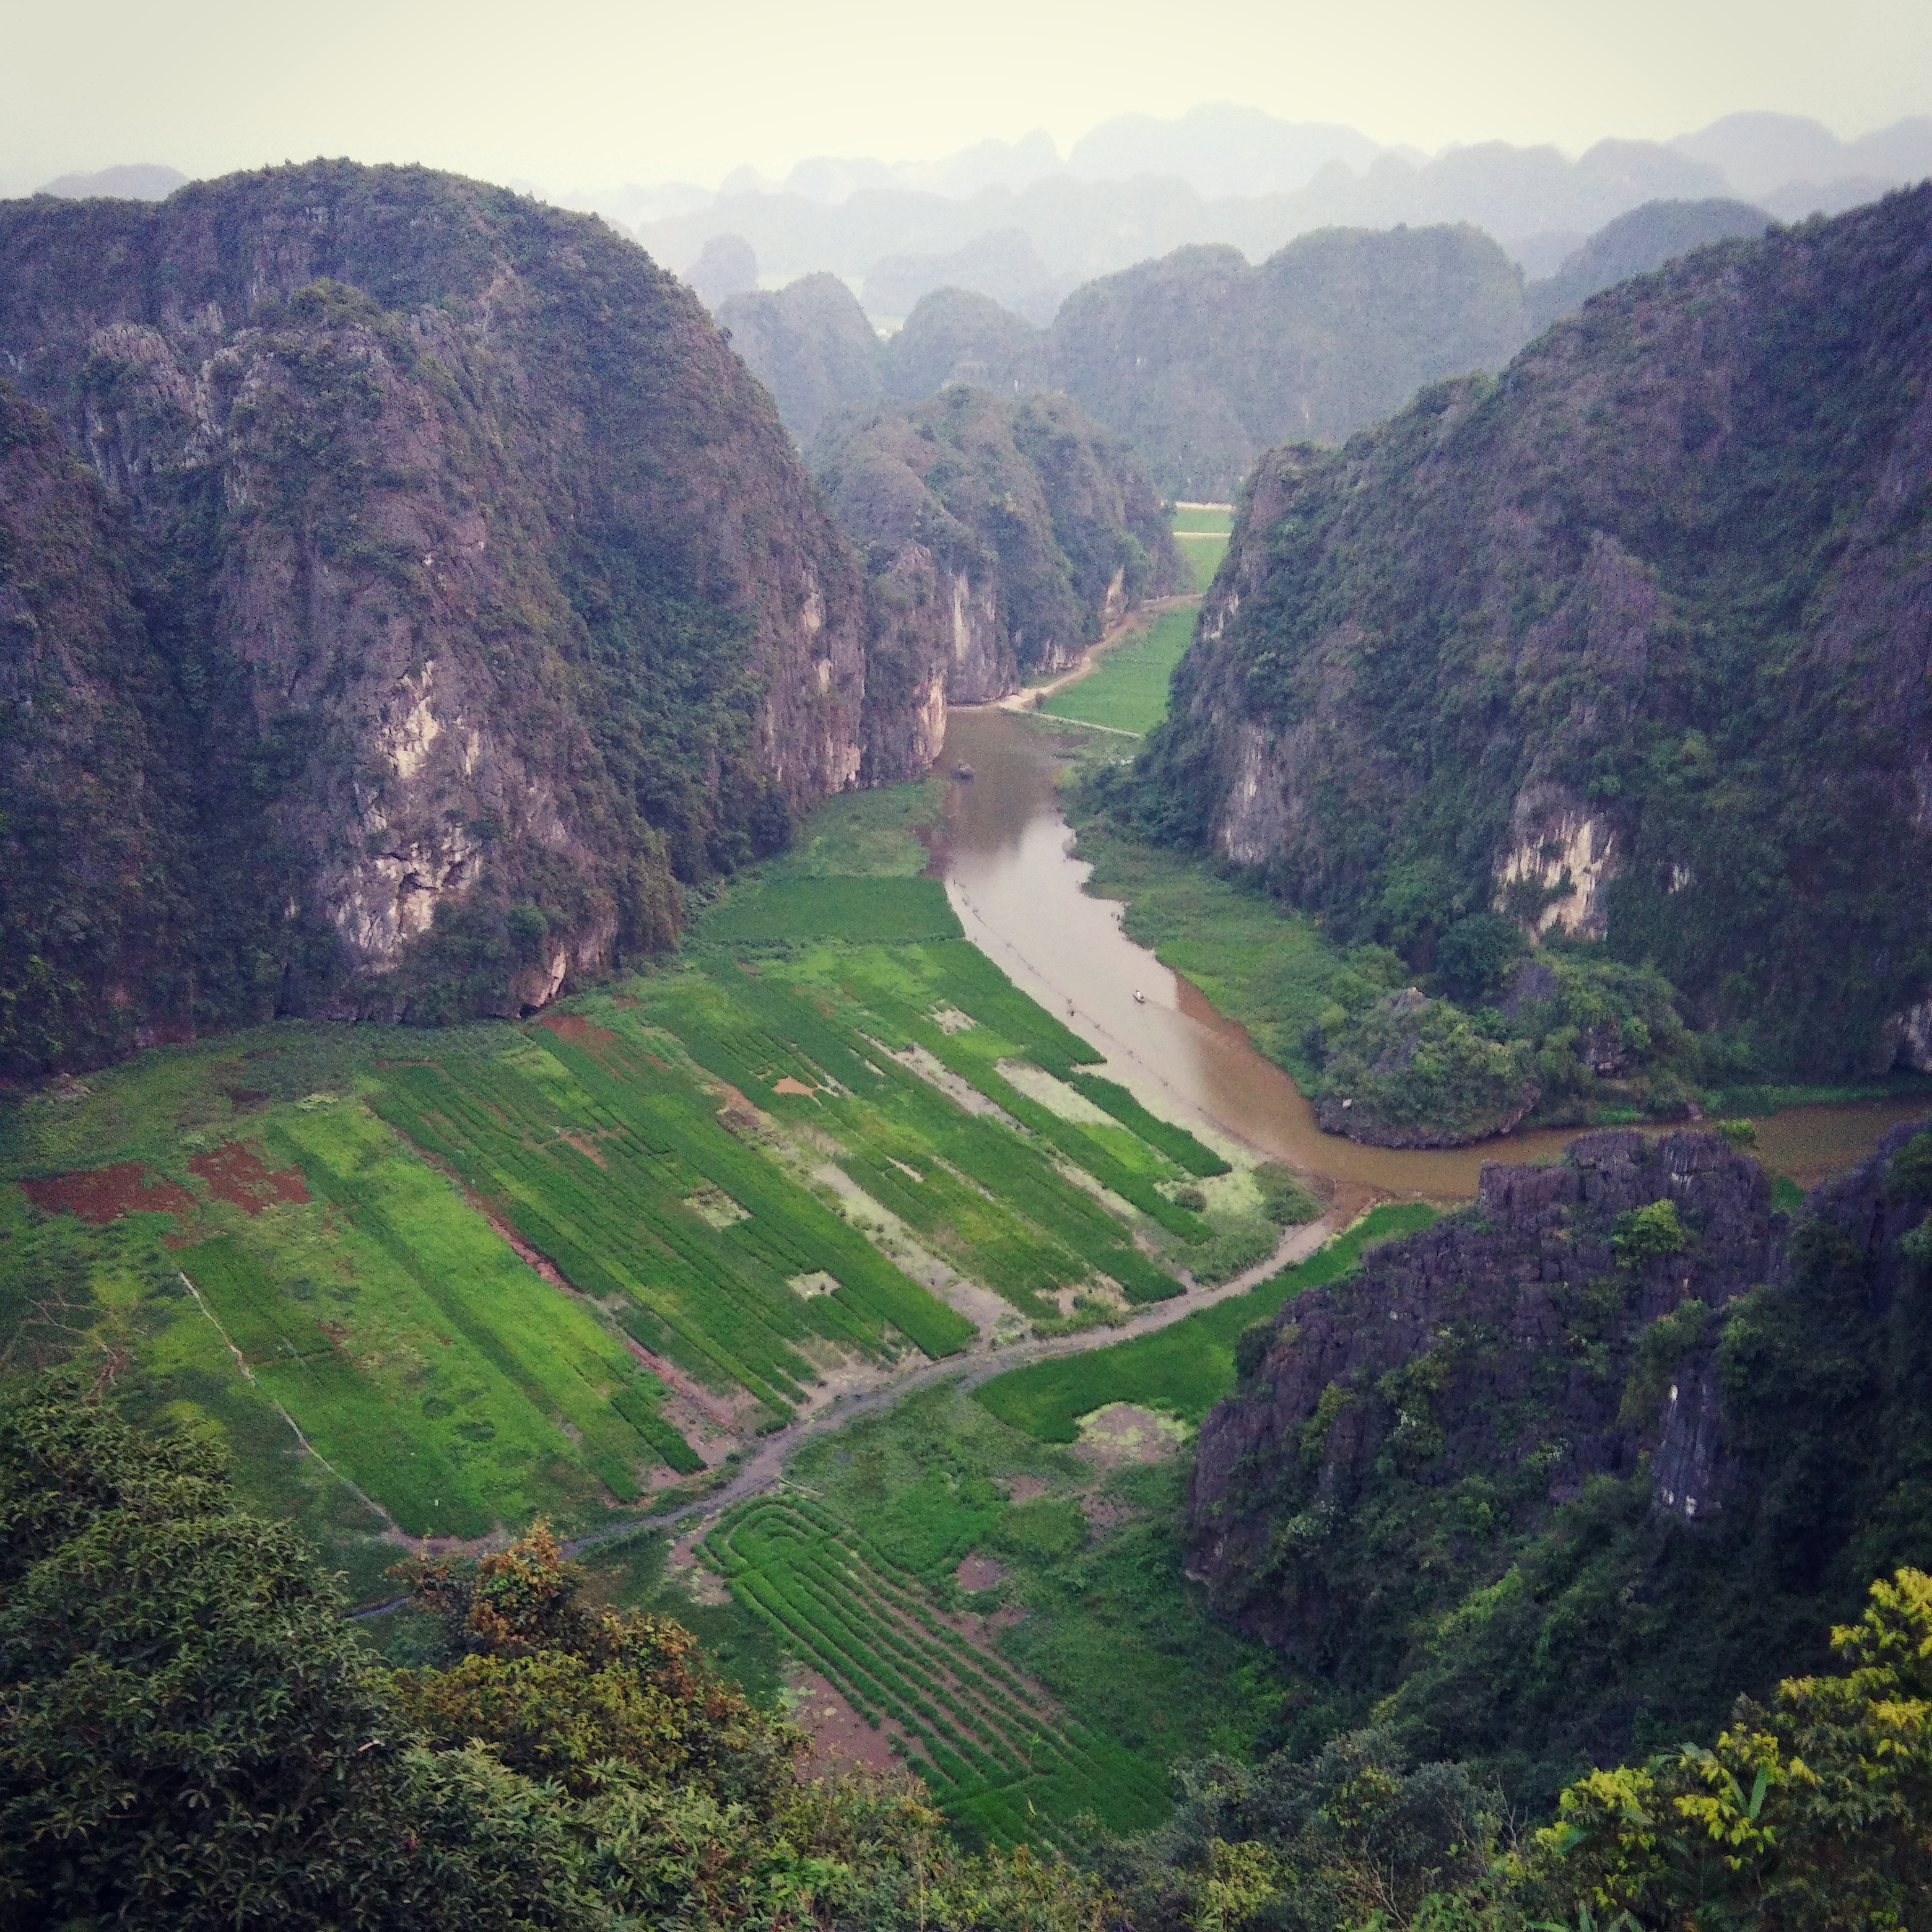 The view from atop Hang Múa, Tam Coc Vietnam www.knowntoventure.com